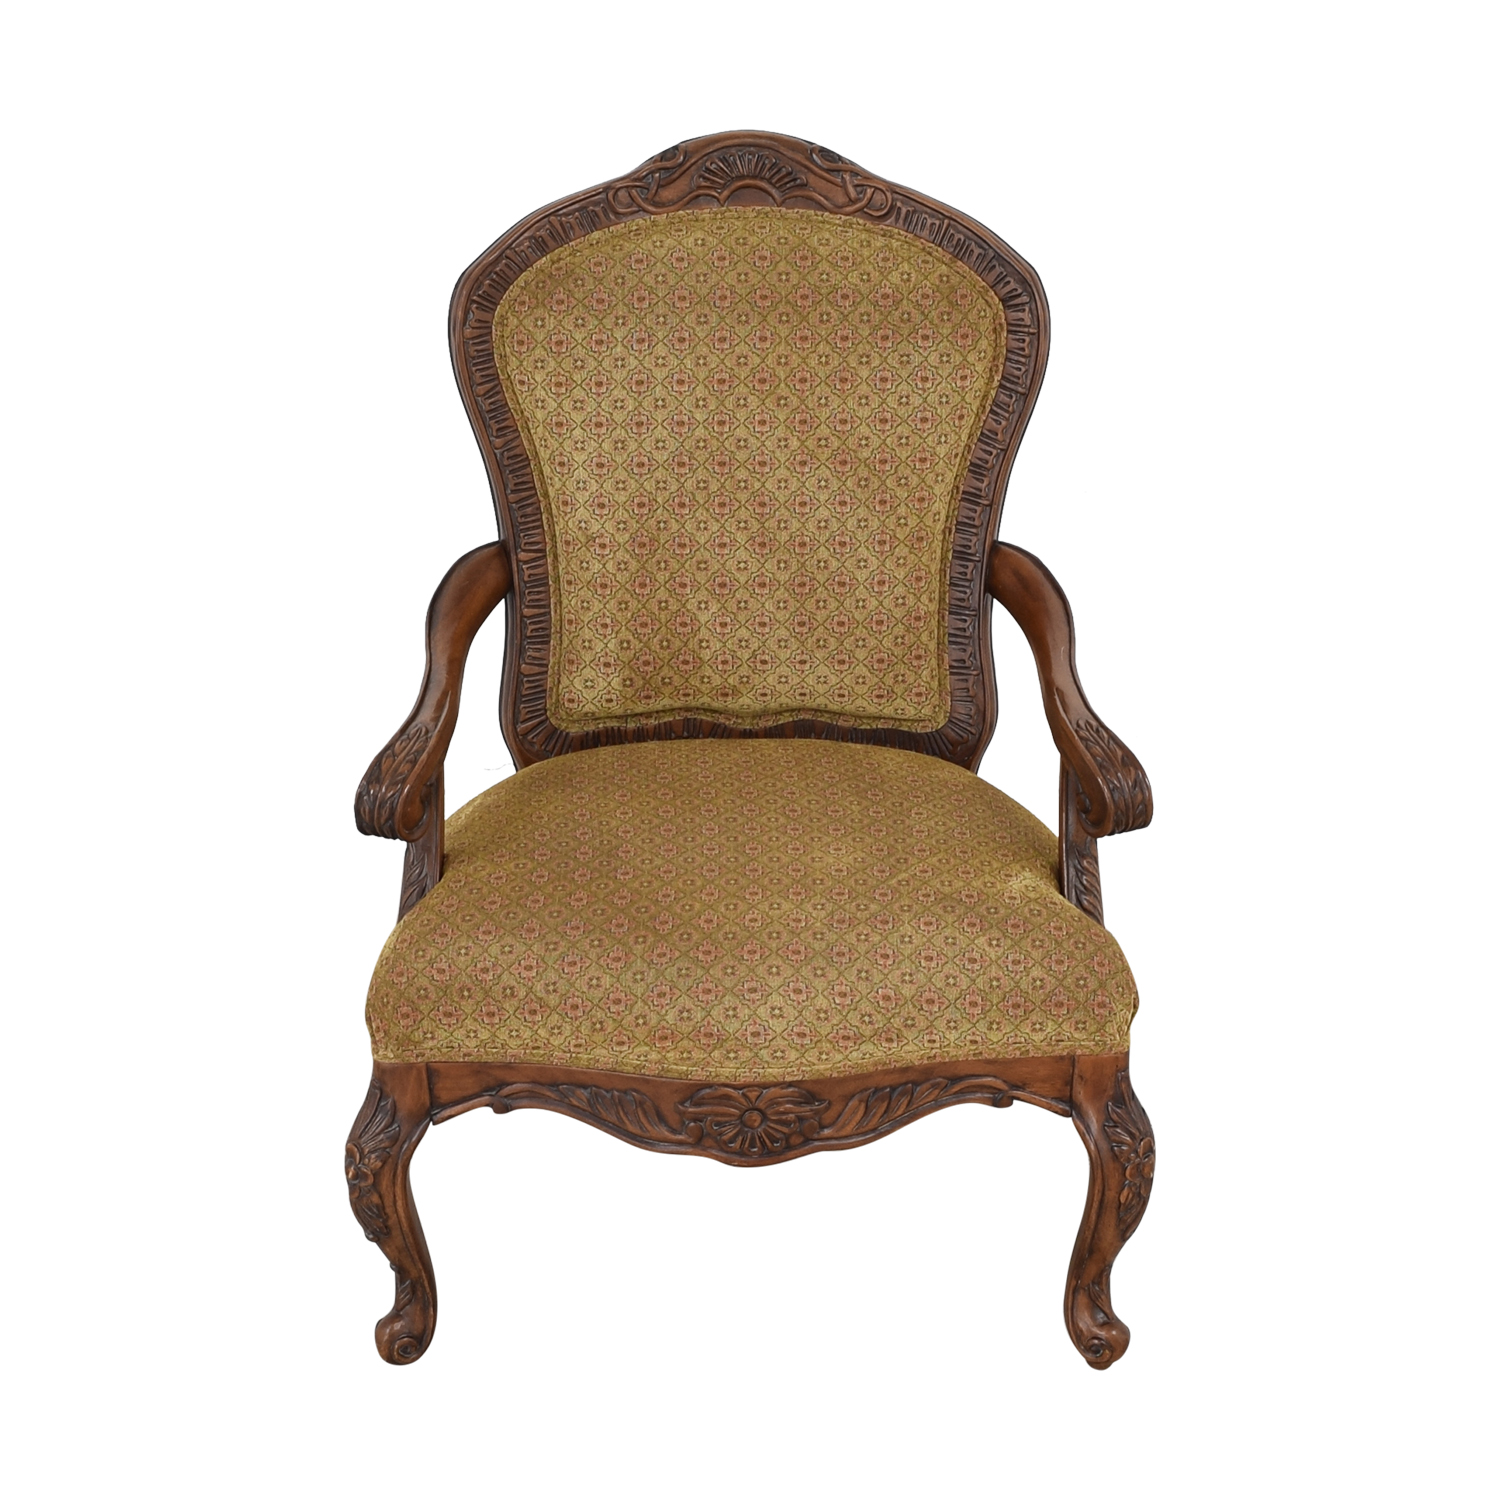 Bernhardt Bernhardt French Provincial Arm Chair second hand